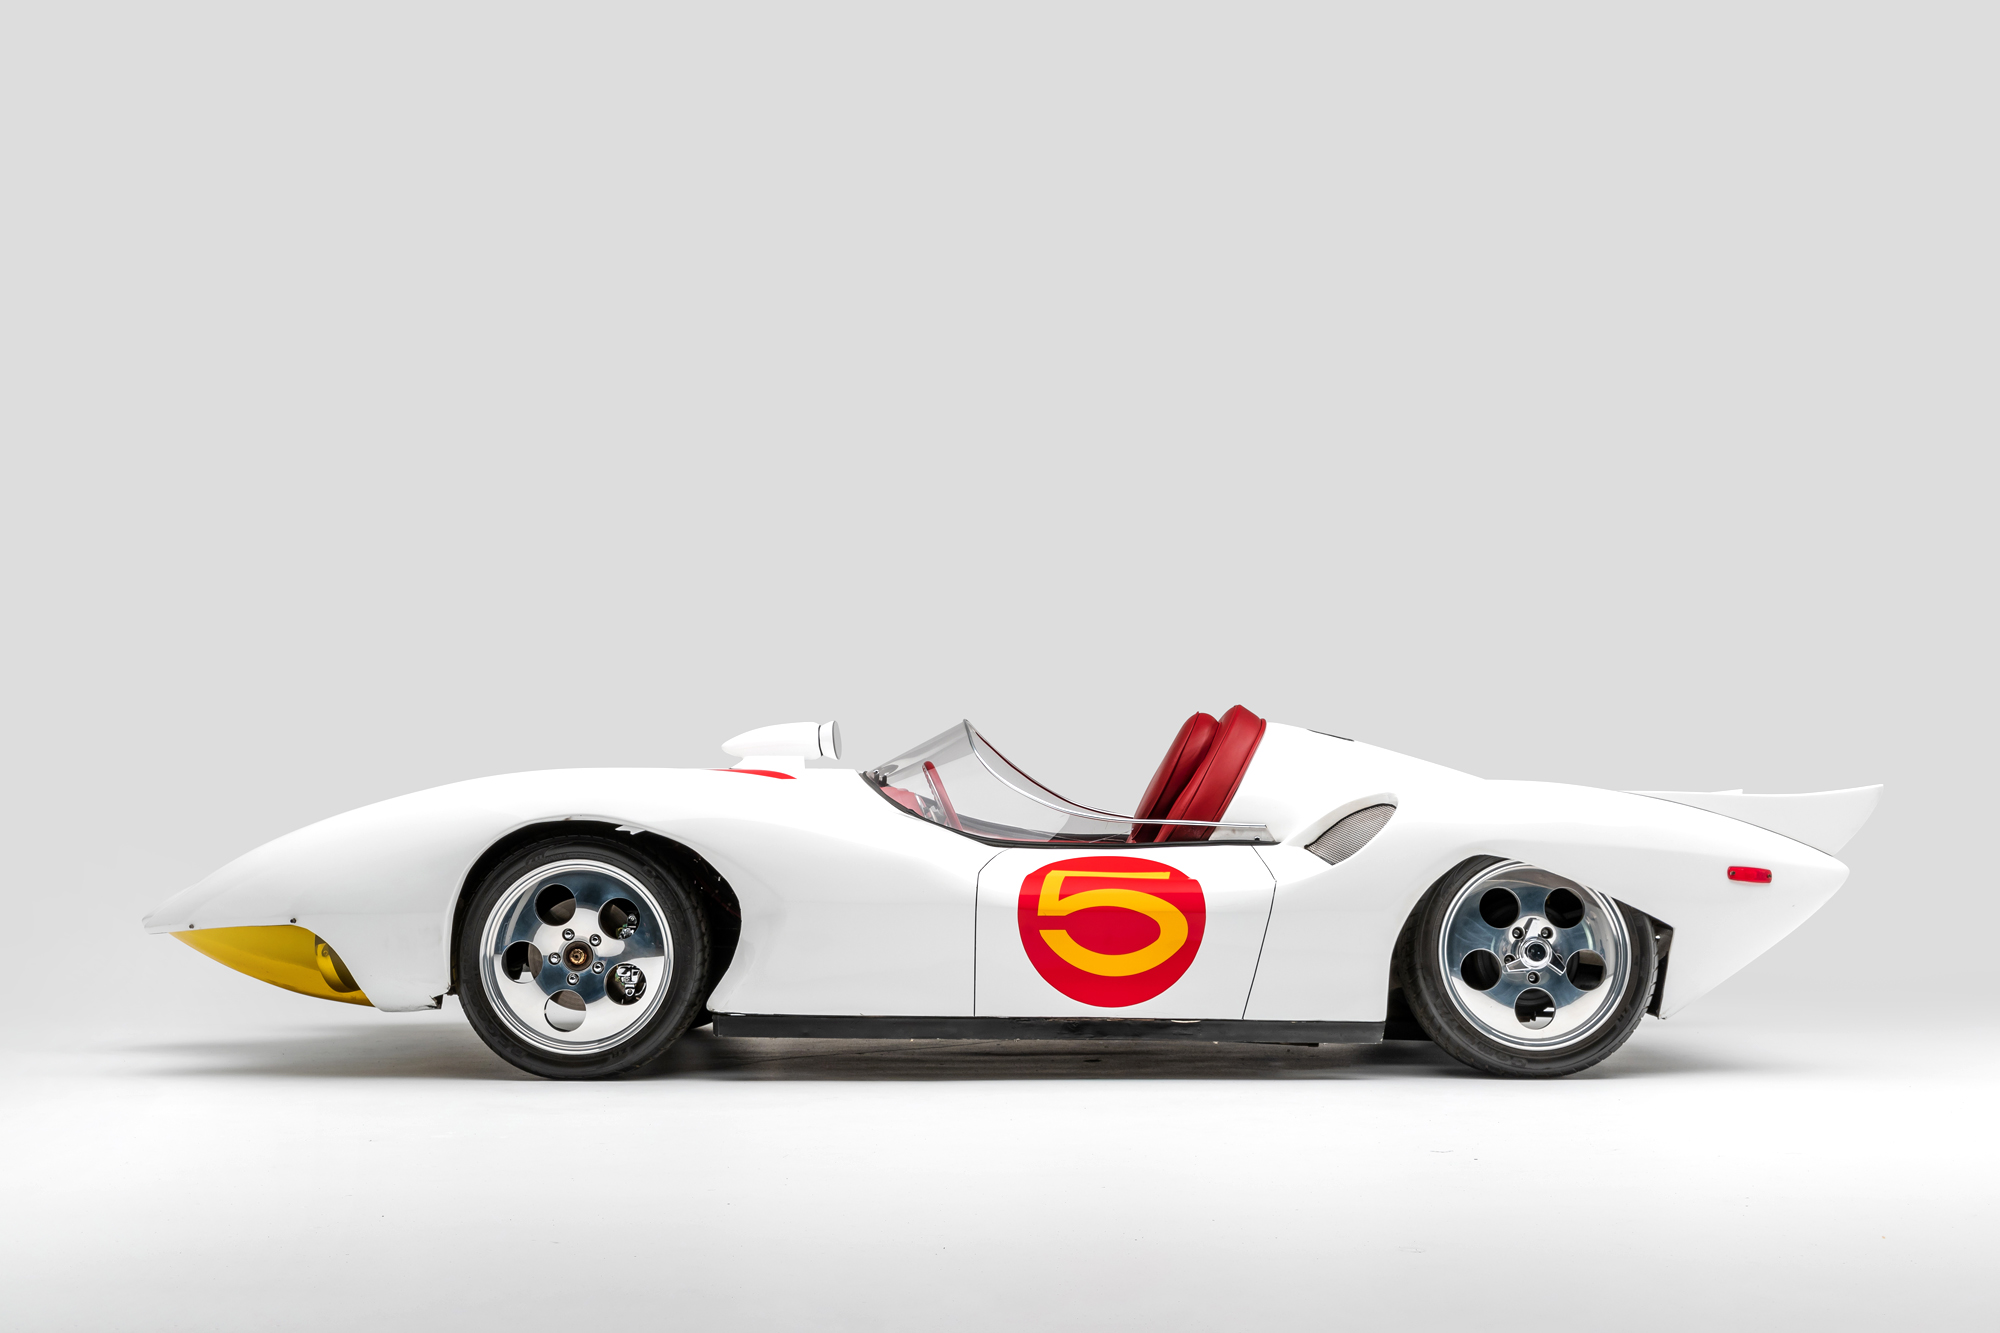 Speed Racer Mach 5sci-fi movie and TV cars on display at LA's Petersen Museum